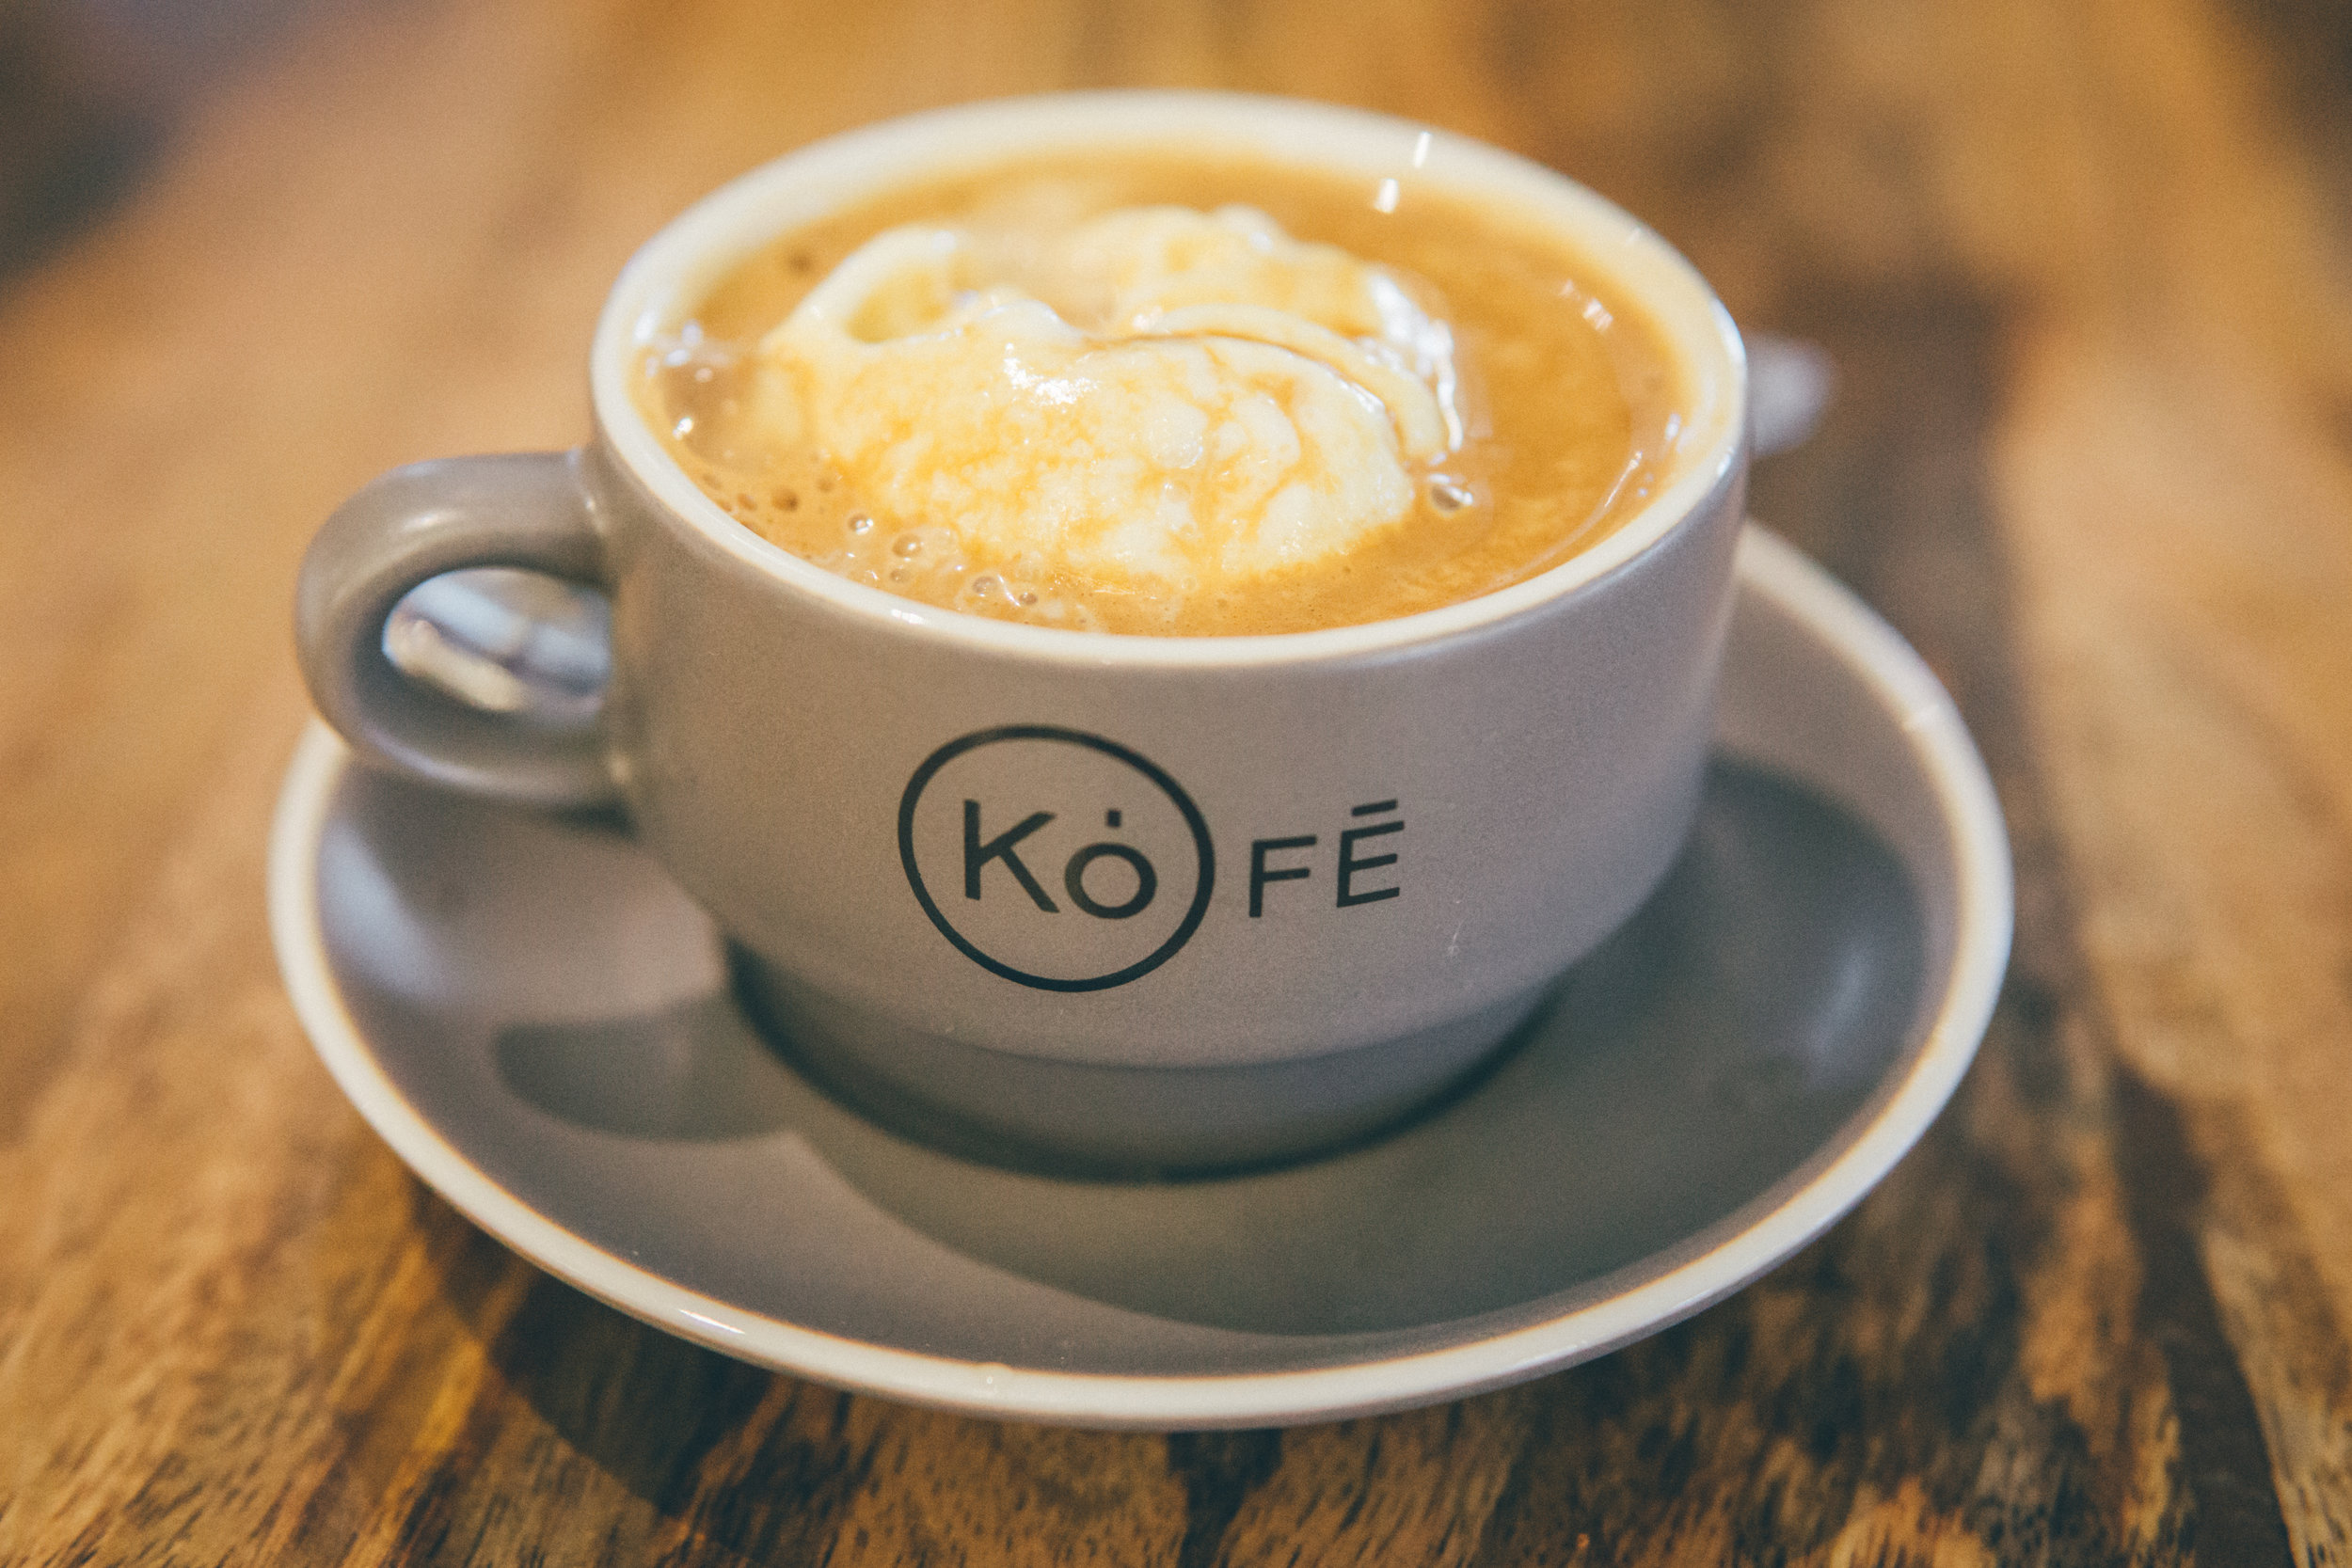 To cleanse the palate: Affogato from Kôfē, featuring Bake'n Babes ice cream